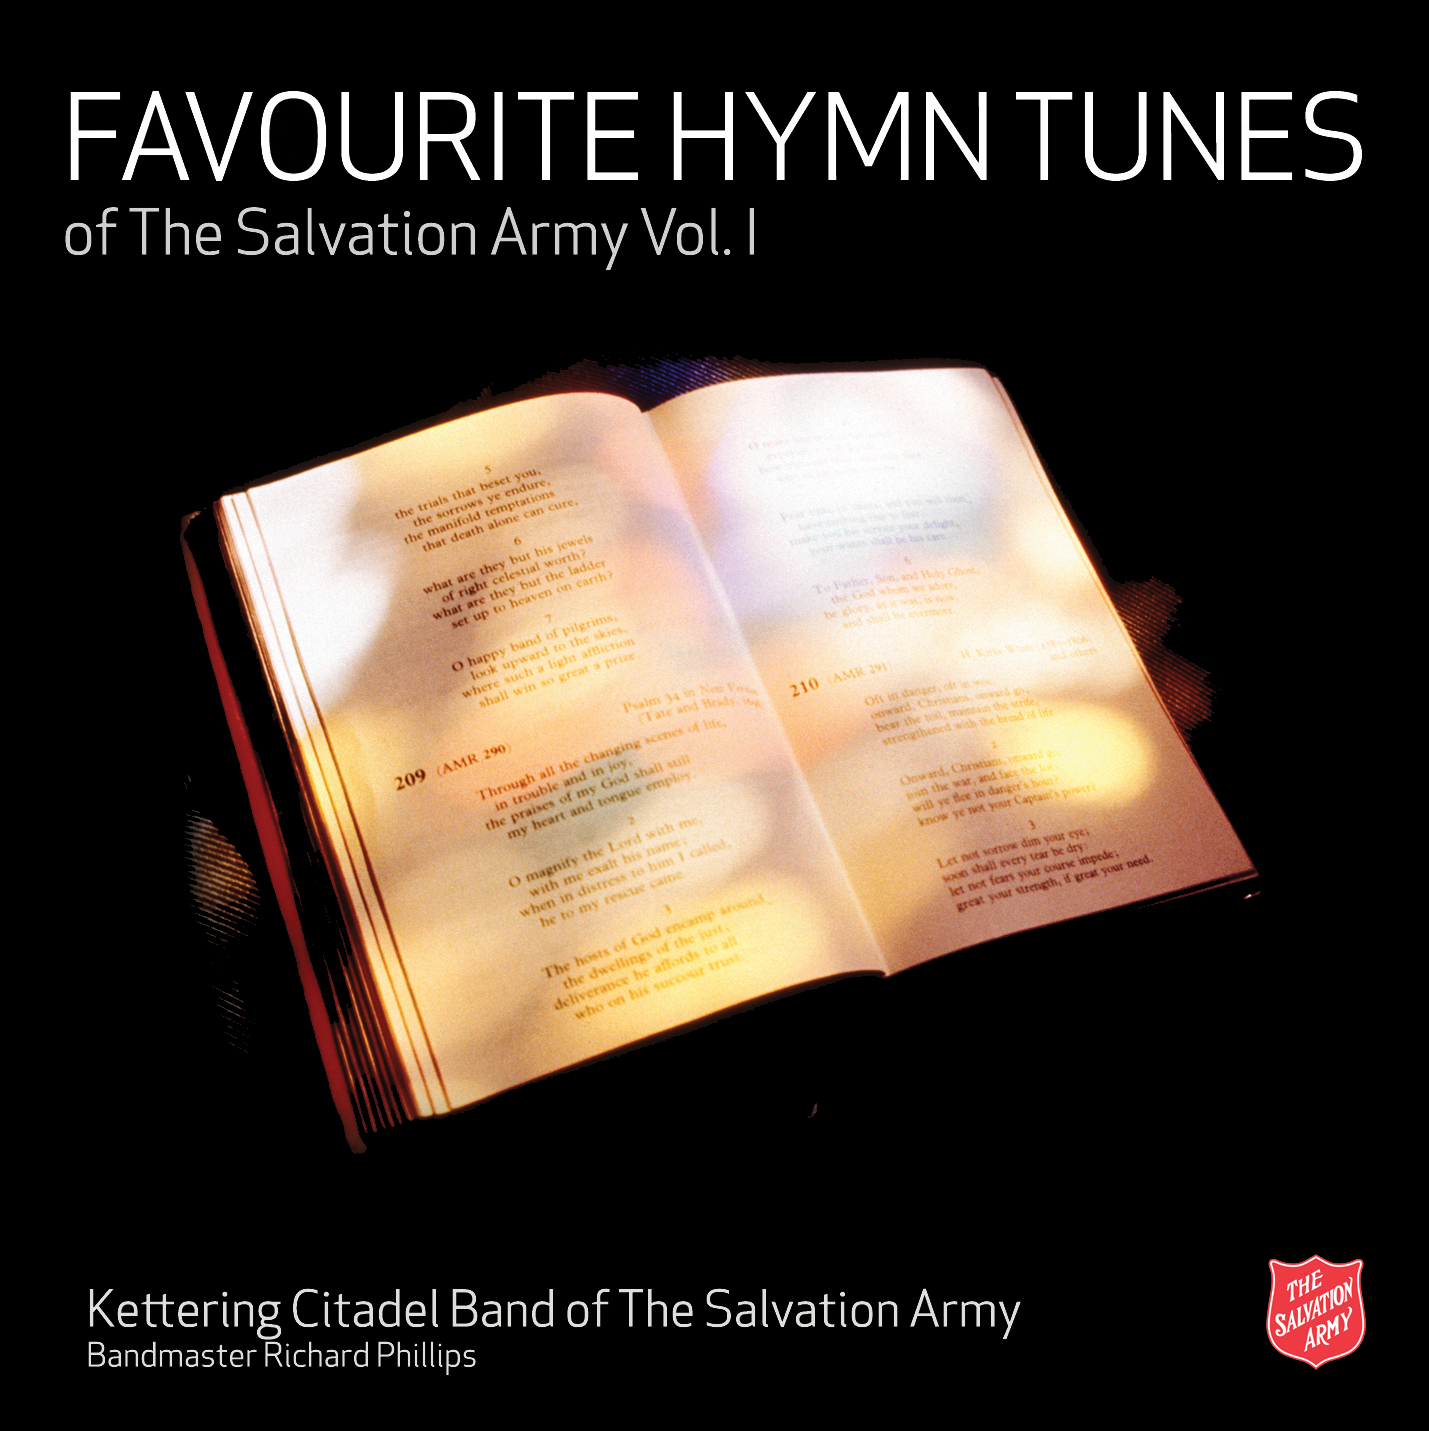 Favourite Hymn Tunes of The Salvation Army Vol. I - Download